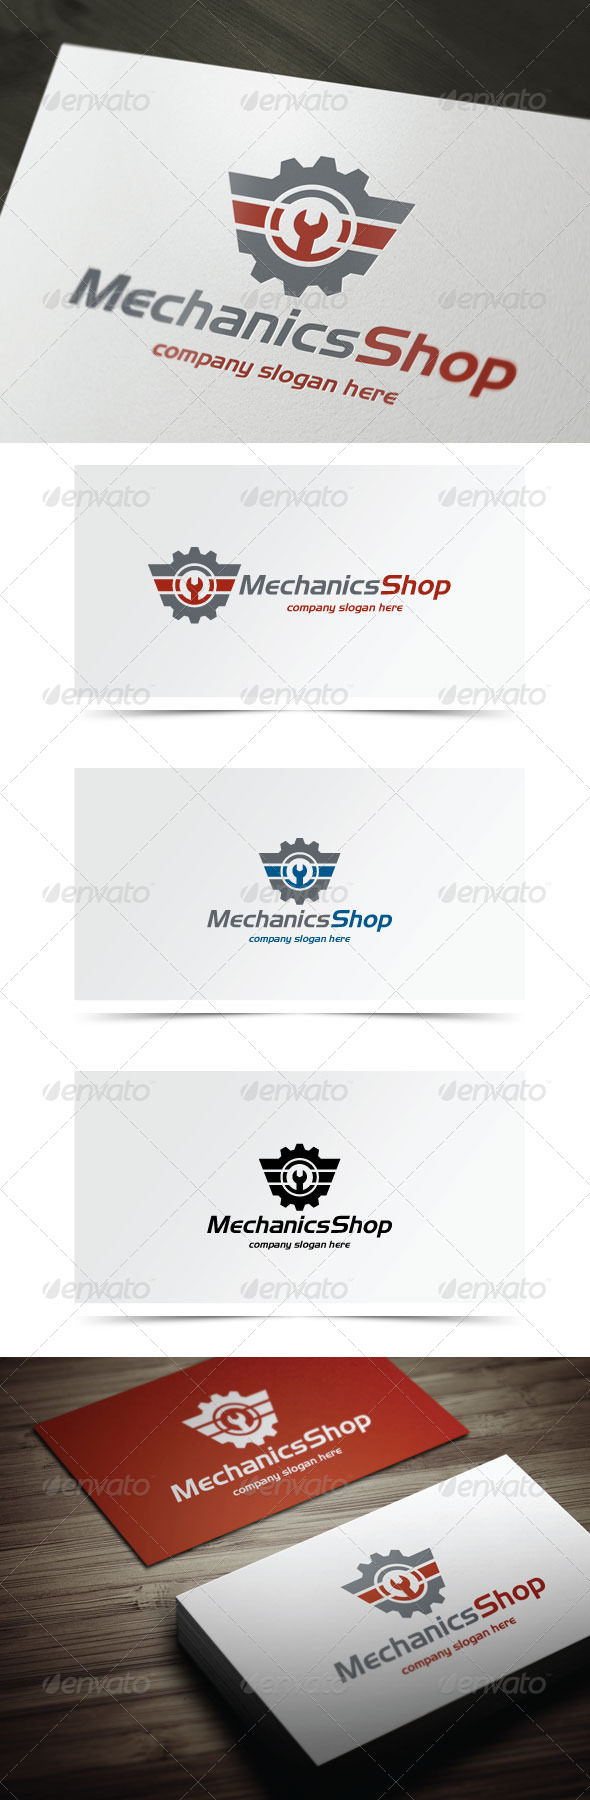 Mechanics Shop